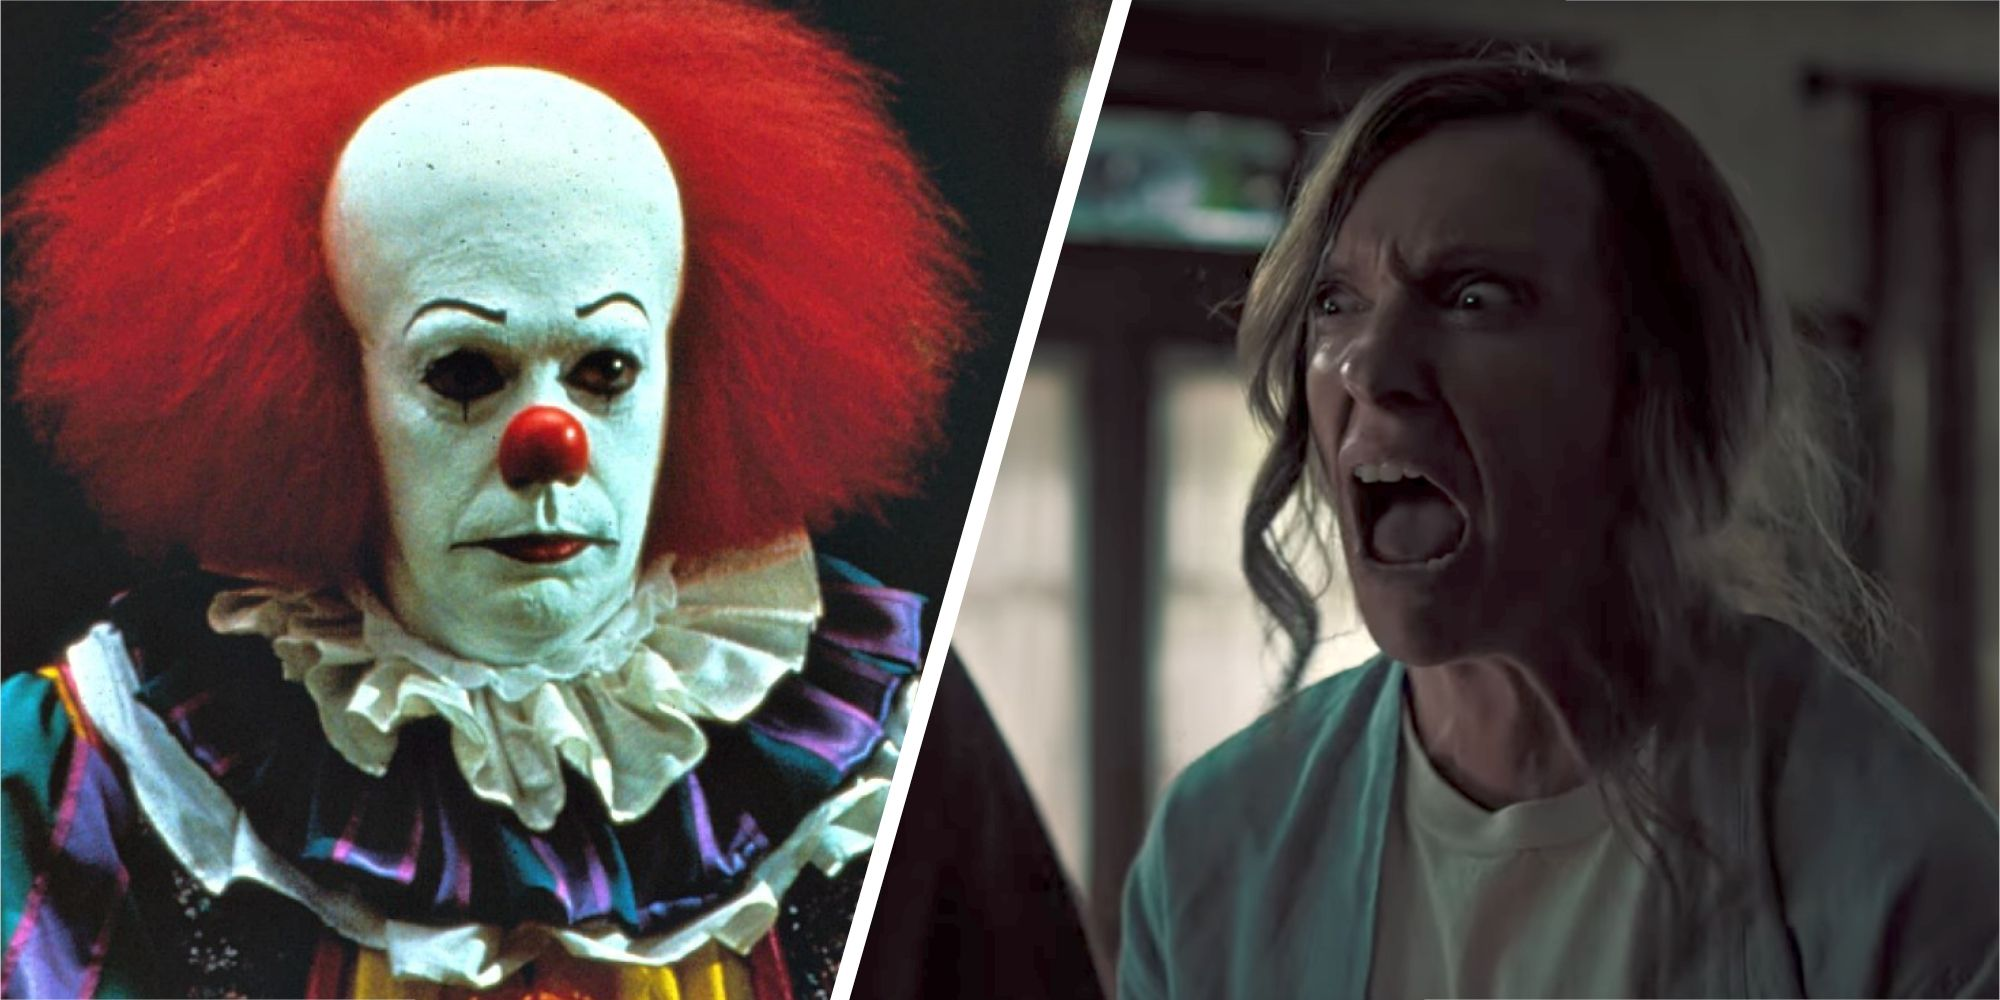 57 of the best horror movies to scare you silly this Halloween